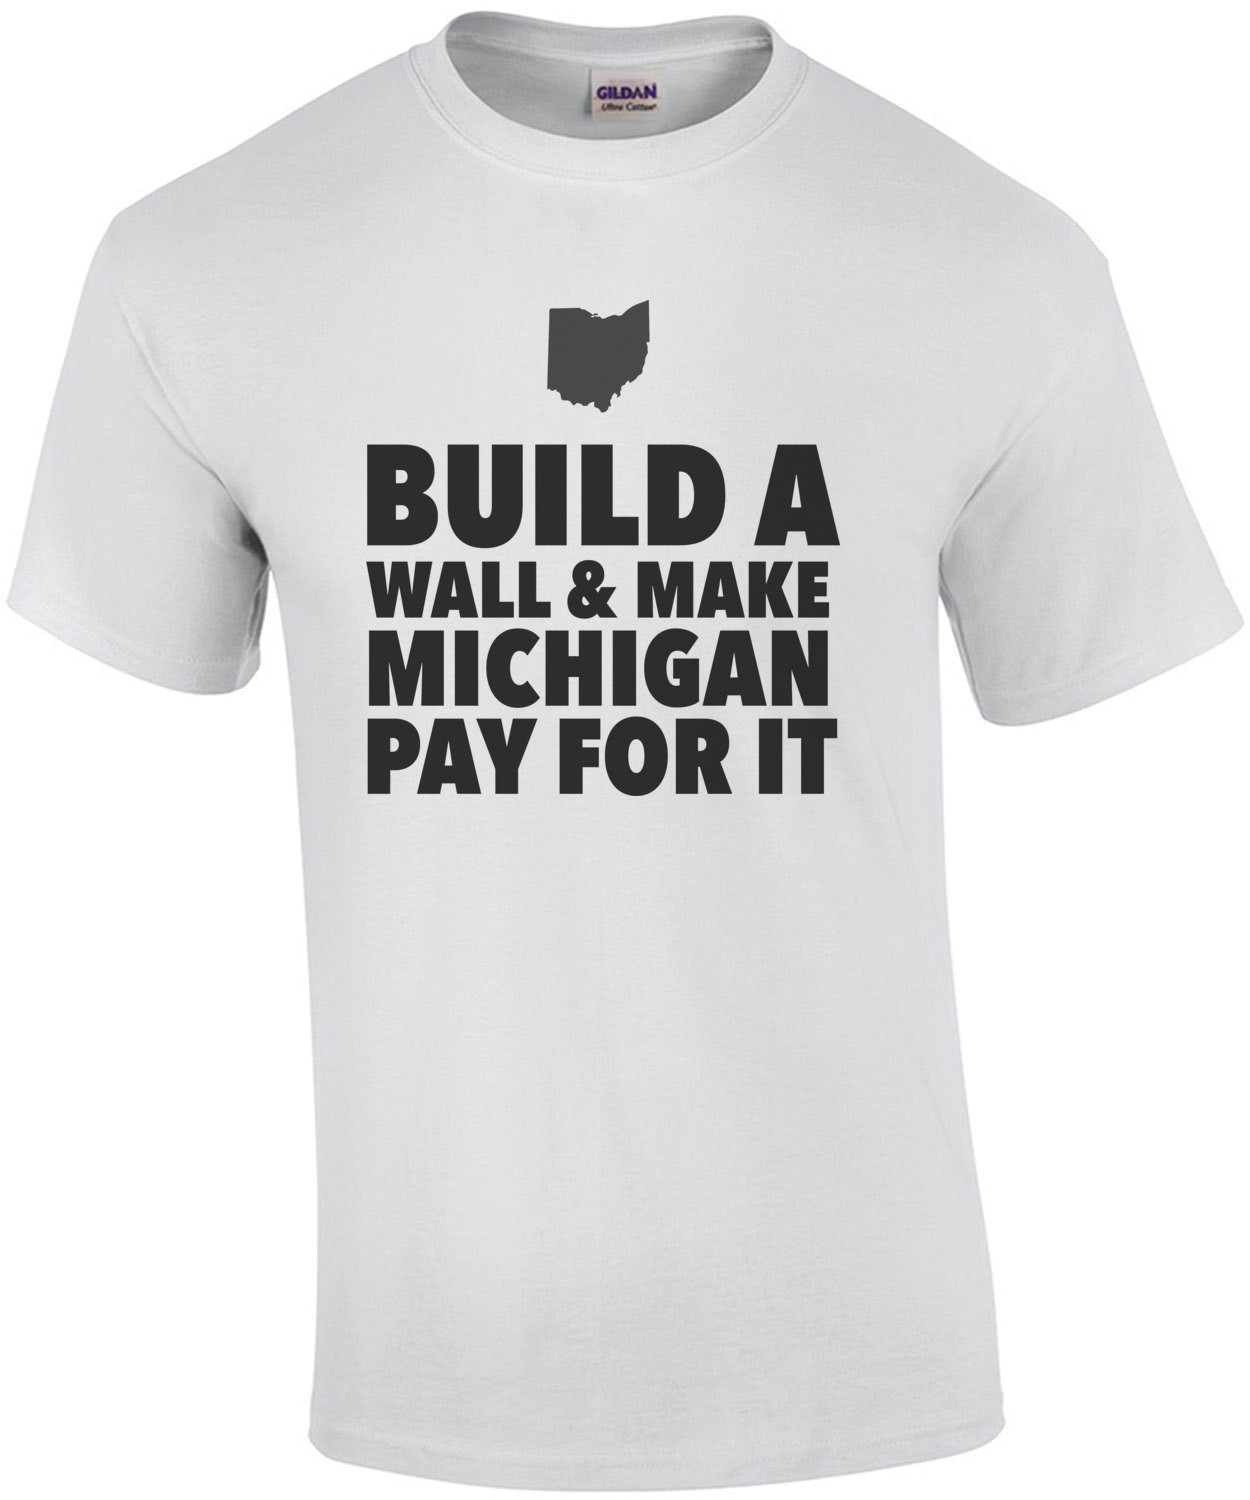 Build a wall and make Michigan pay for it - Ohio T-Shirt